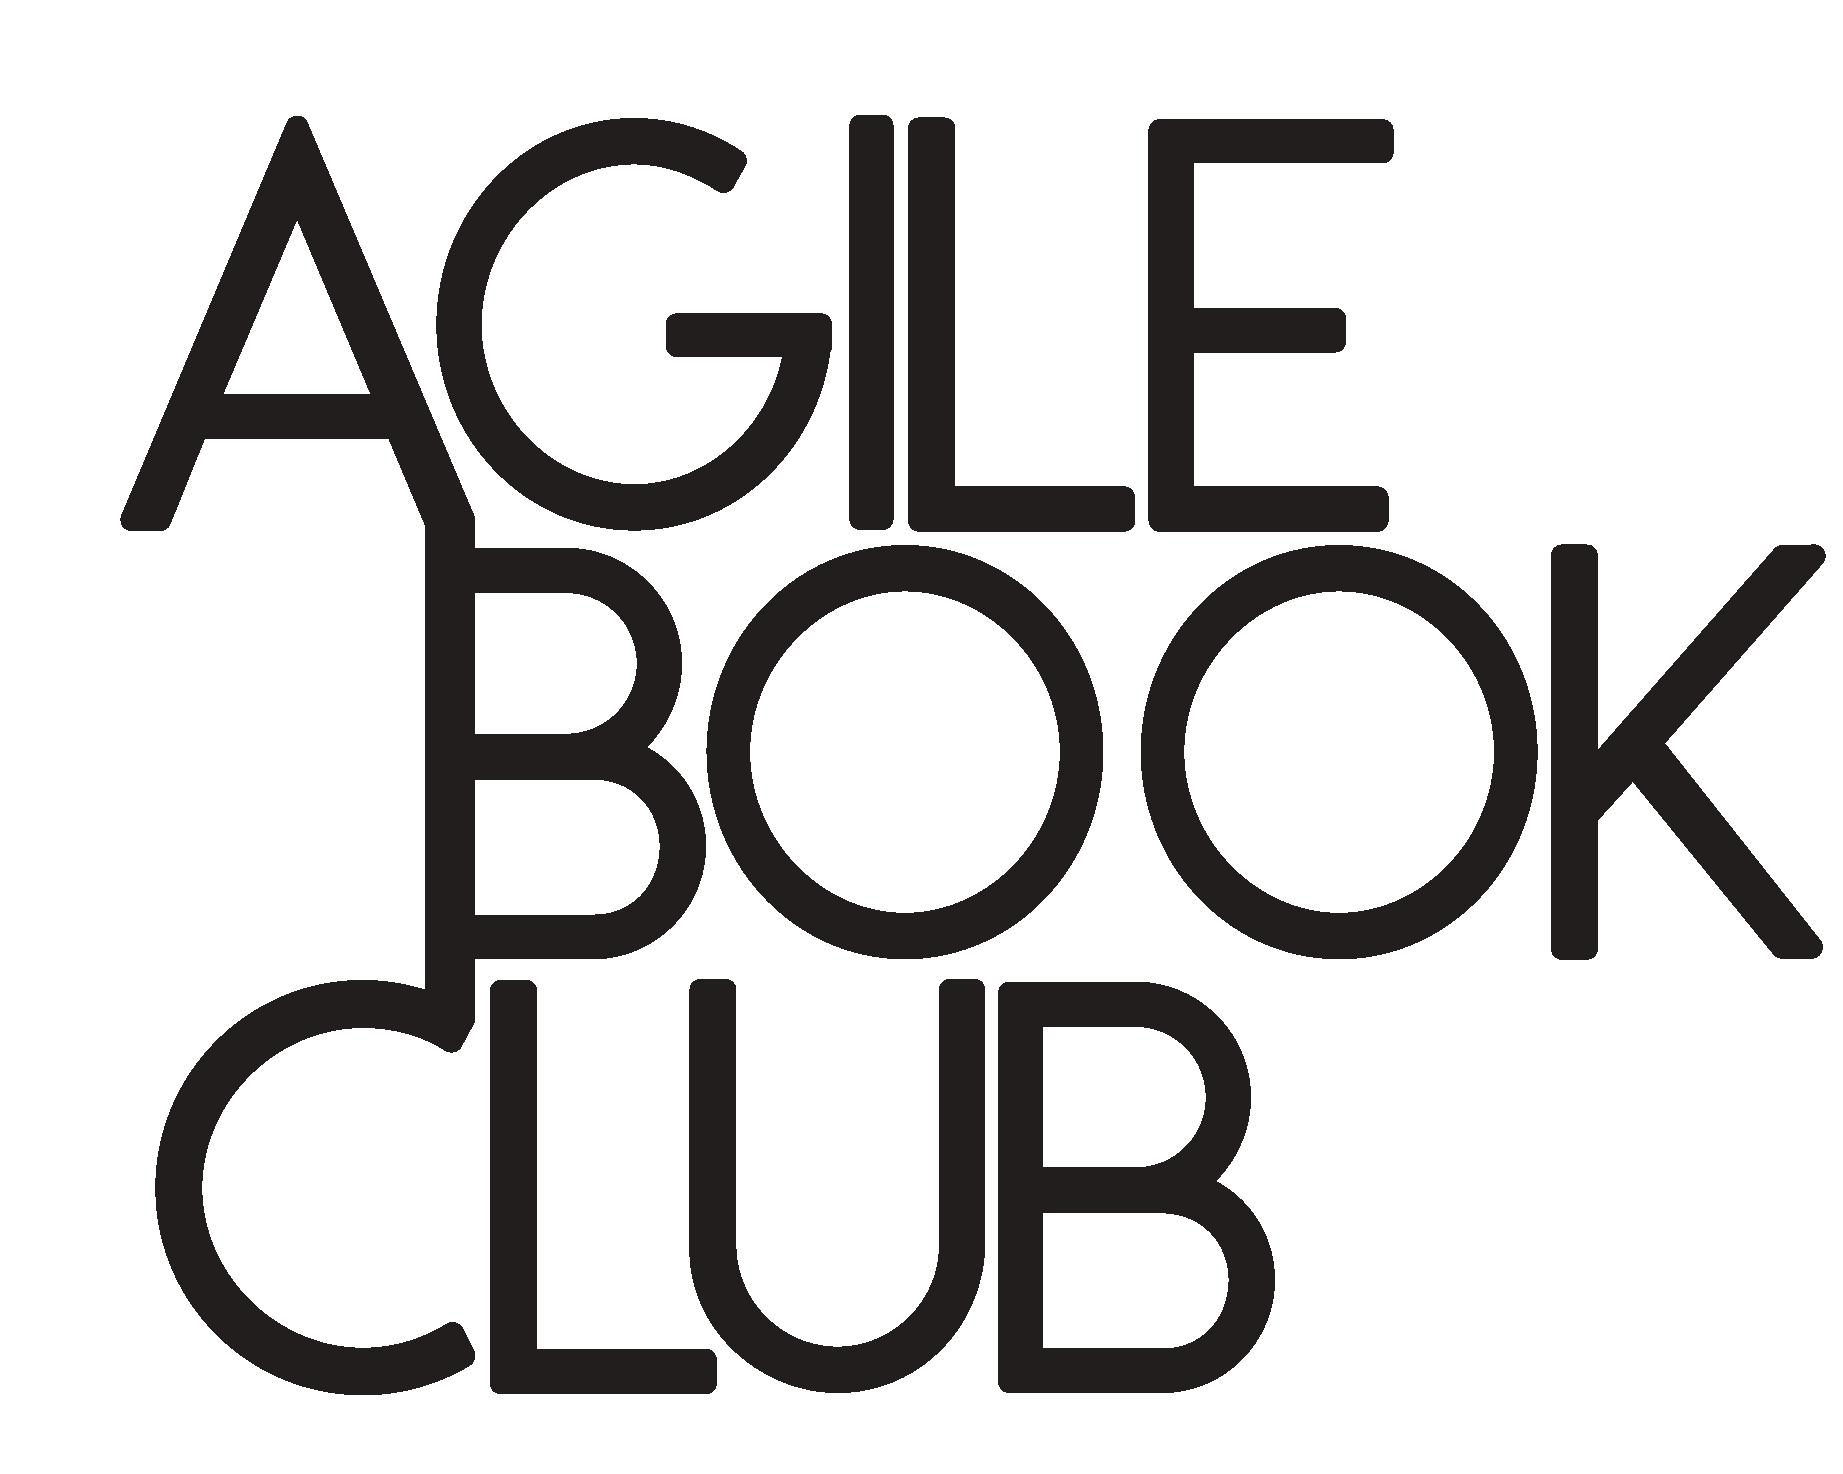 Logo for Agile Book Club